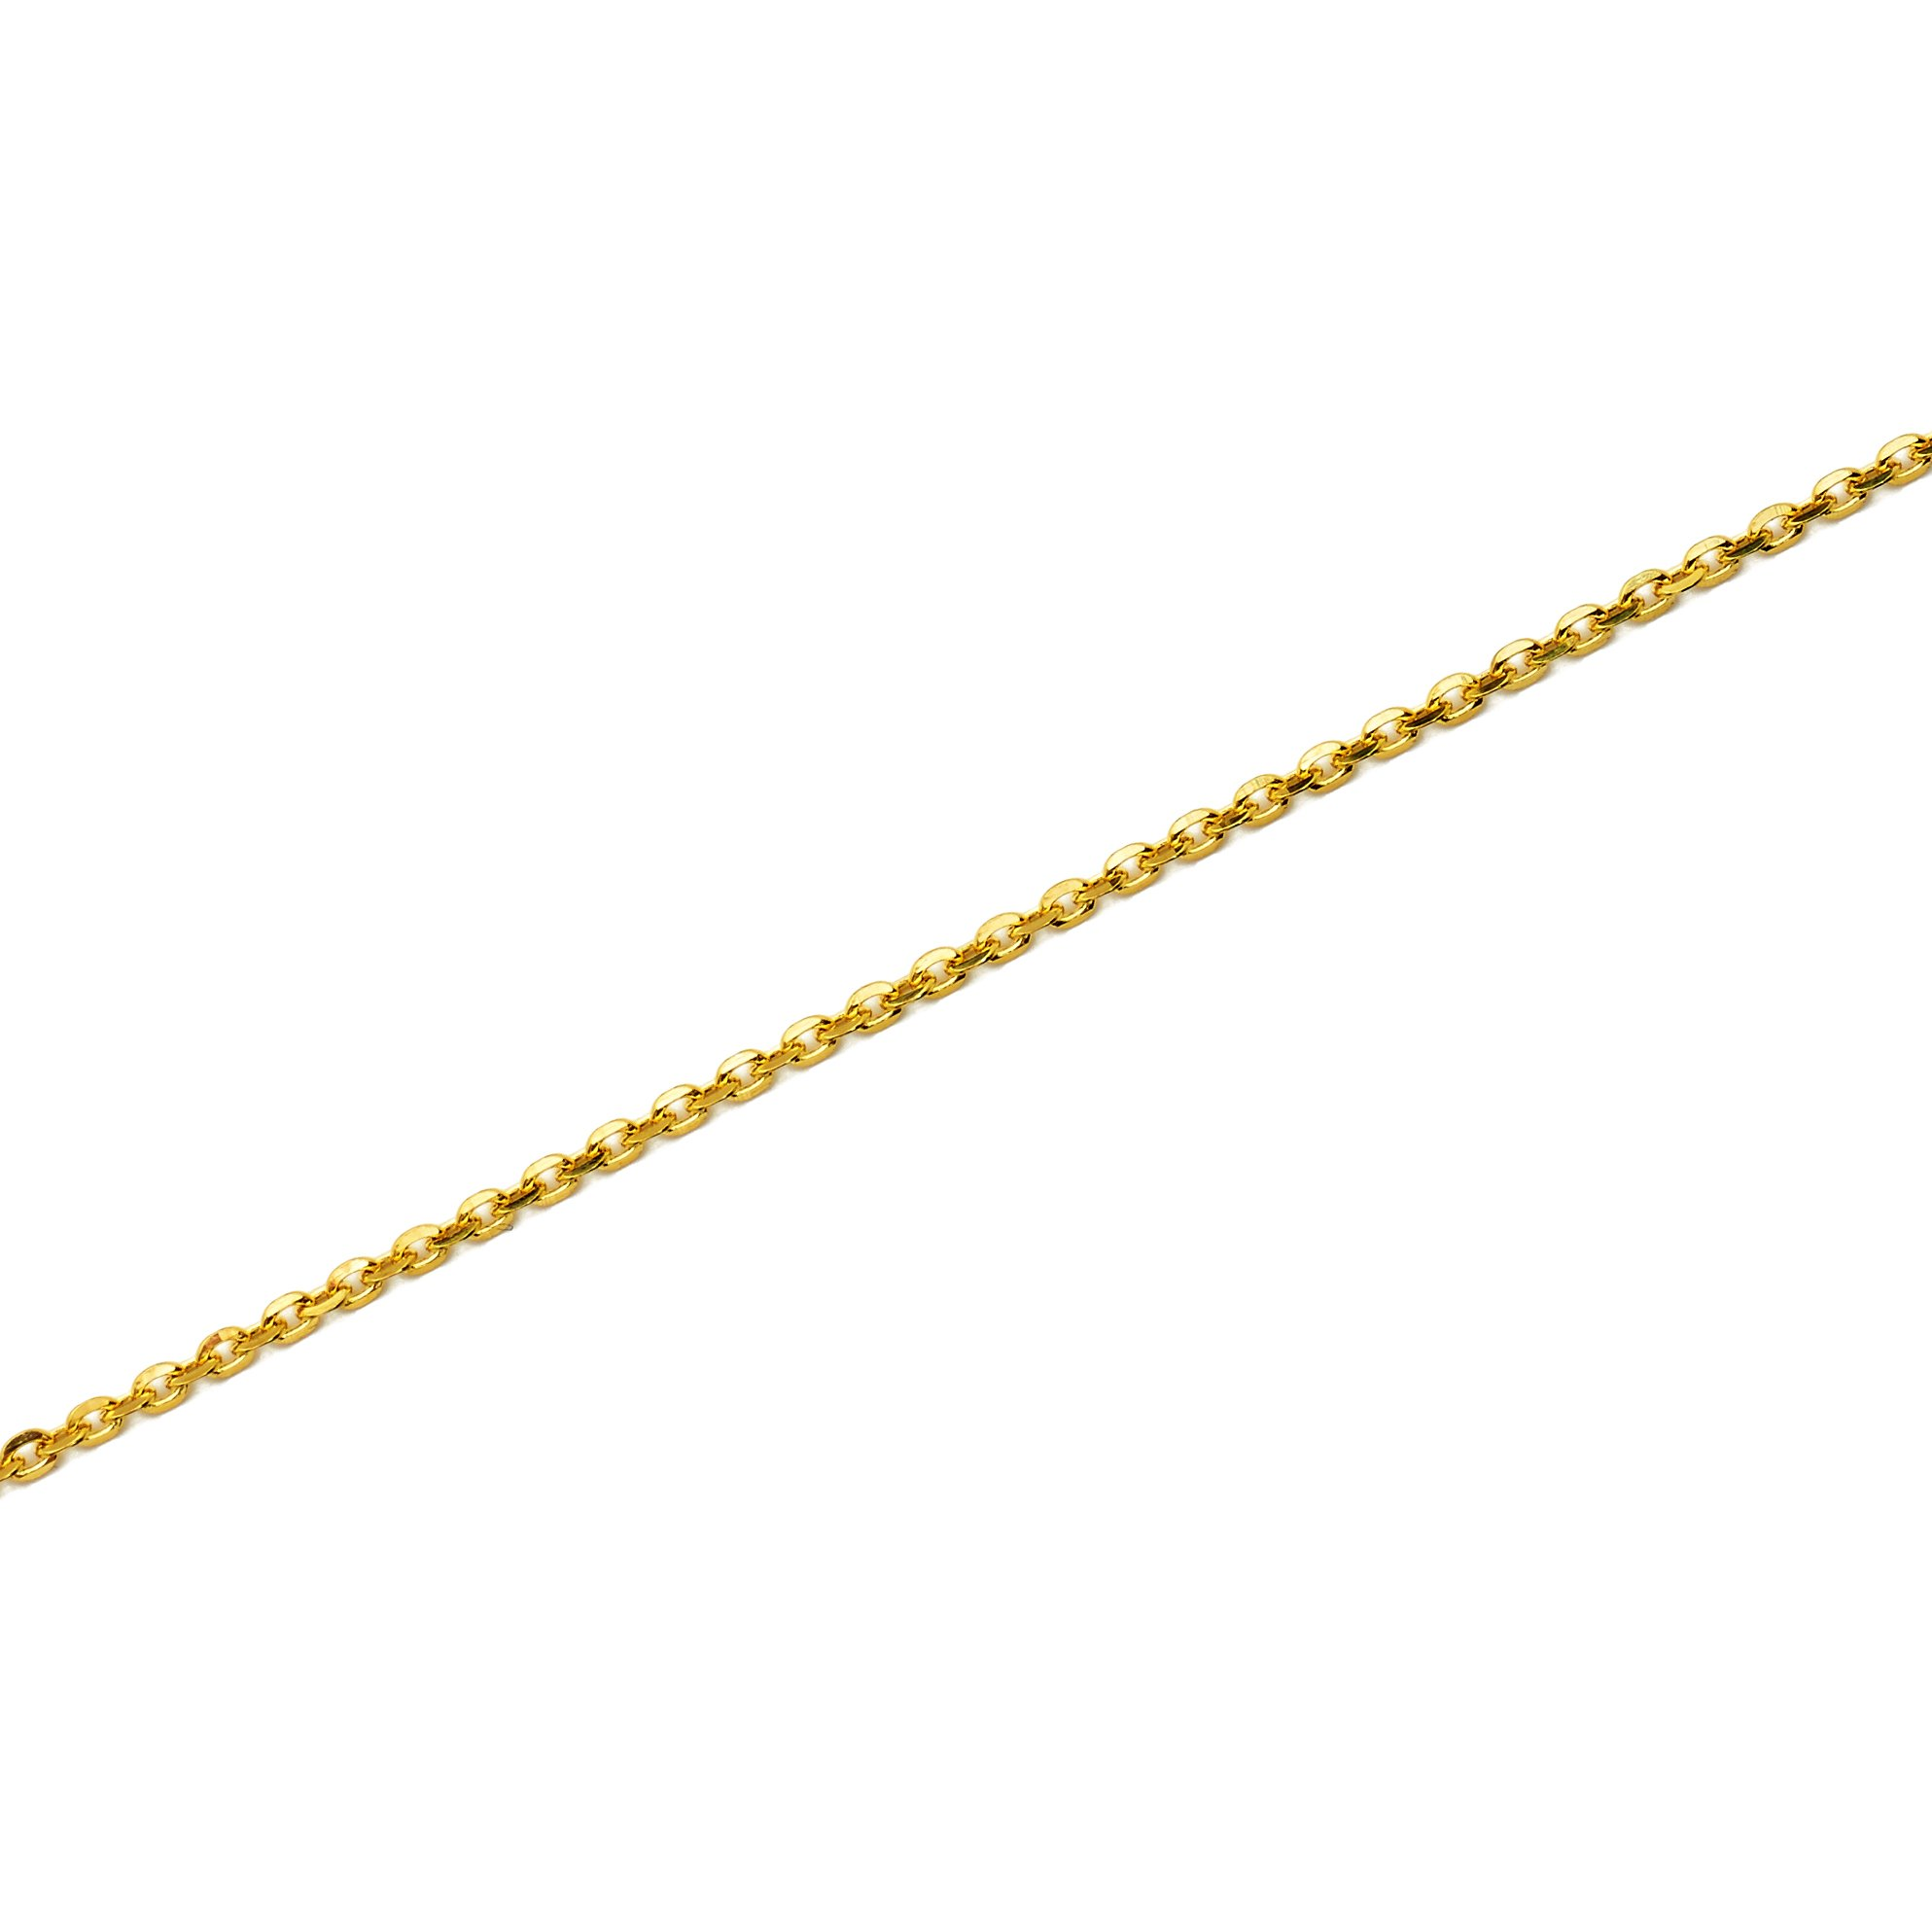 LOVEBLING 10k Yellow Gold Mirror Rolo 040 (1.25mm) High Polished Chain Necklace w/Spring Lock (Available in 16'' 18'' 20'') (20)